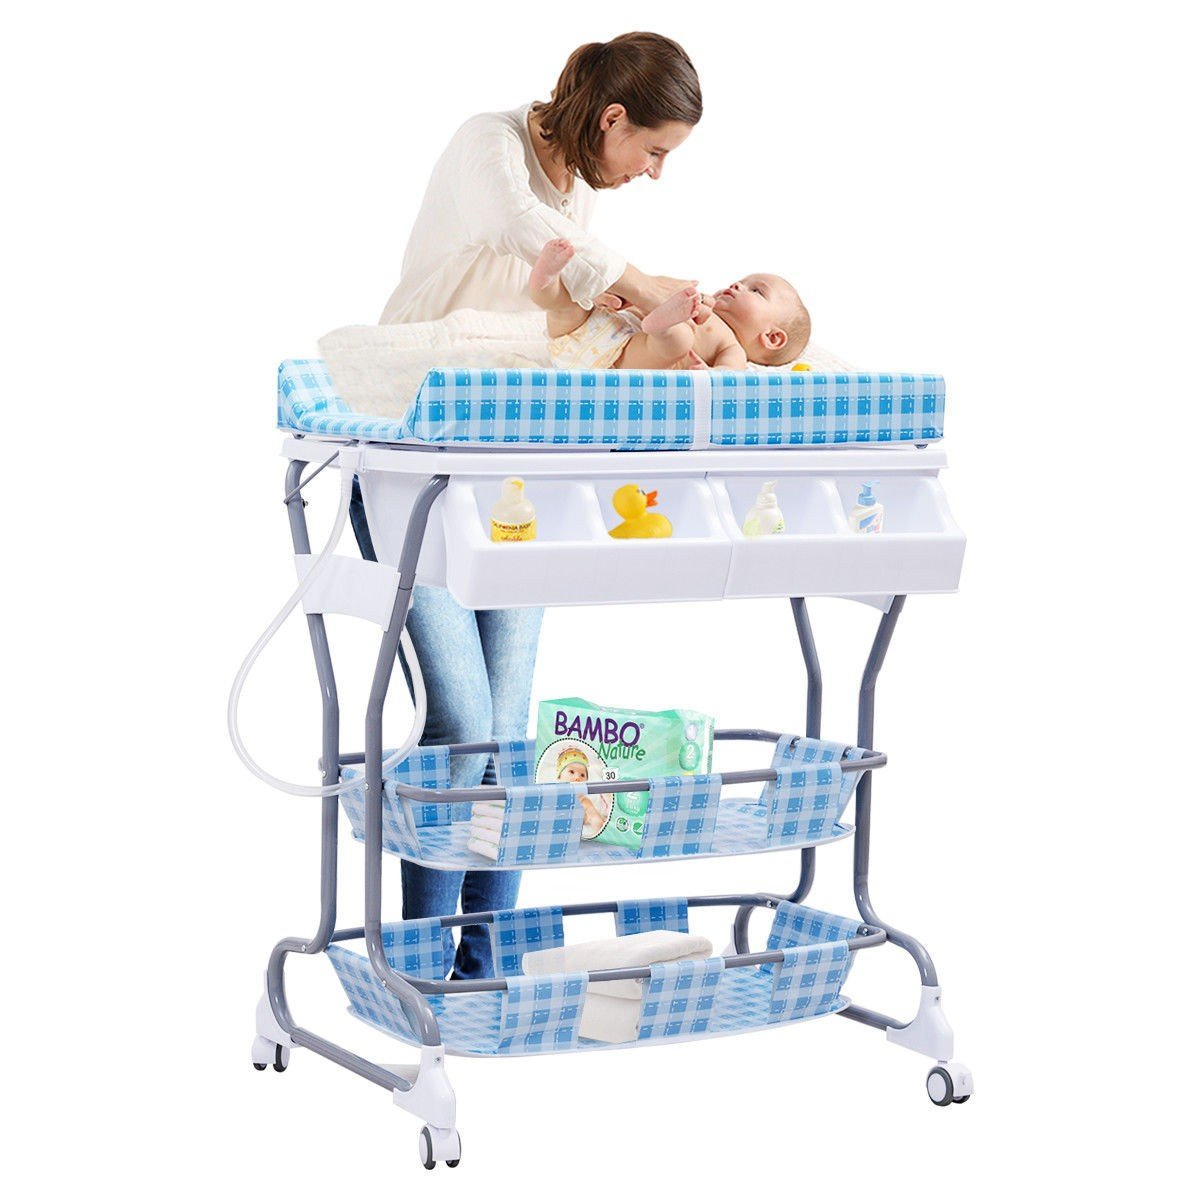 MD Group Baby Changing Table Blue Foam & Steel Frame 3-in-1 Pyramid Style Infant Nursery Storage